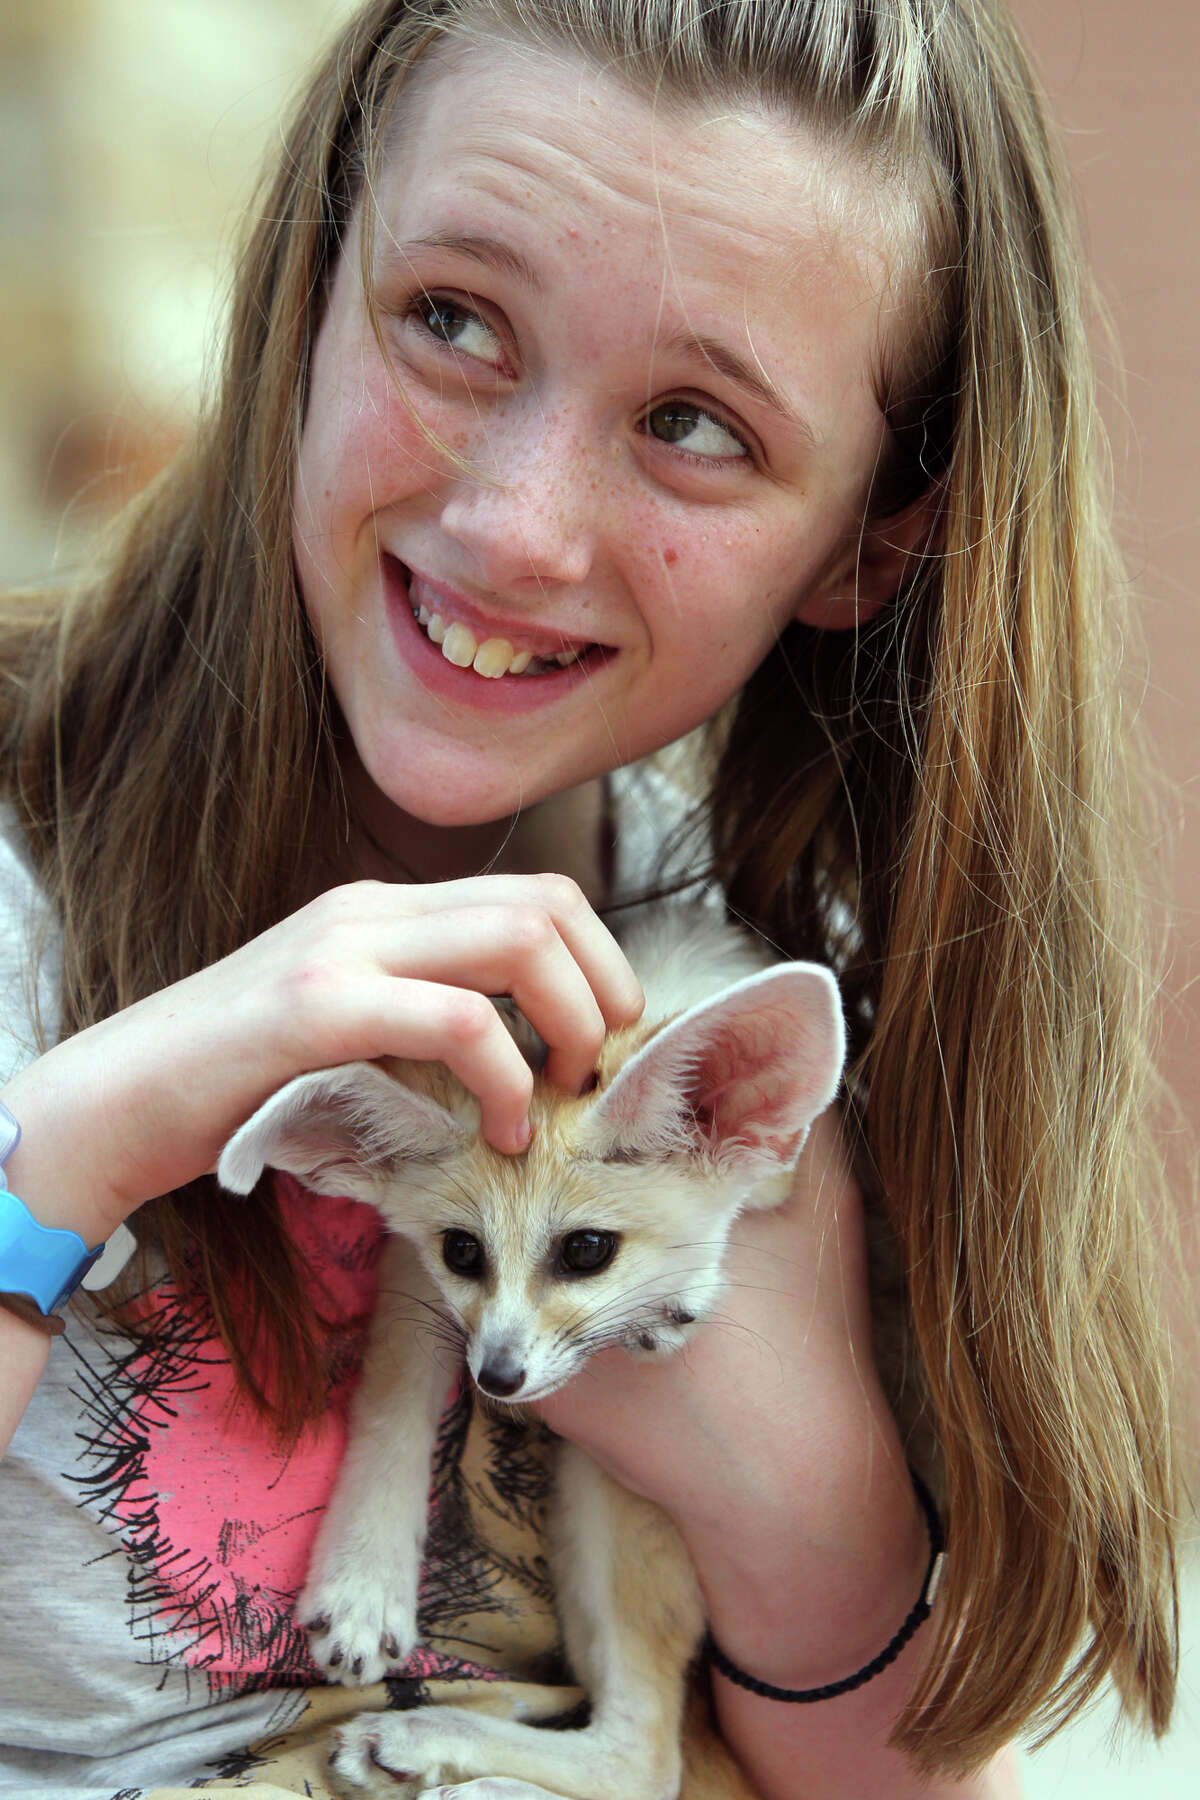 Abbey Paulson, 12, cuddles with a fennec fox Wednesday, June 20, 2012, at Morgan's Wonderland during a special presentation by Zoofari Animal Outreach. The fennec fox is a small nocturnal fox found in north Africa with large ears that help it dissipate heat.